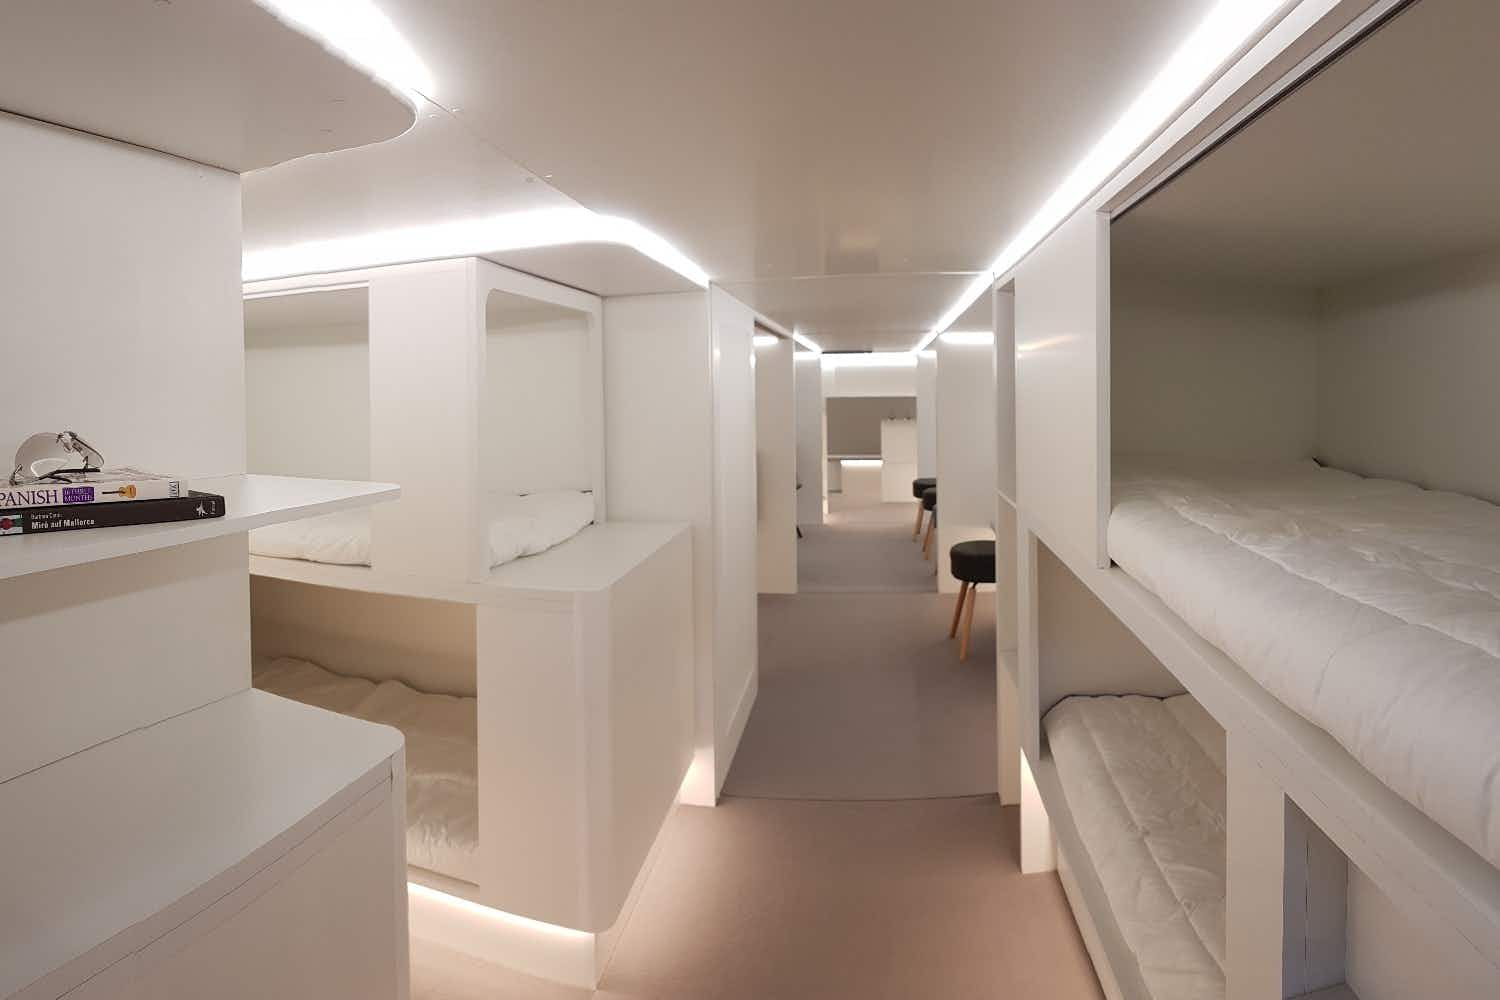 You could be sleeping in a bunk bed in economy on a flight in the future